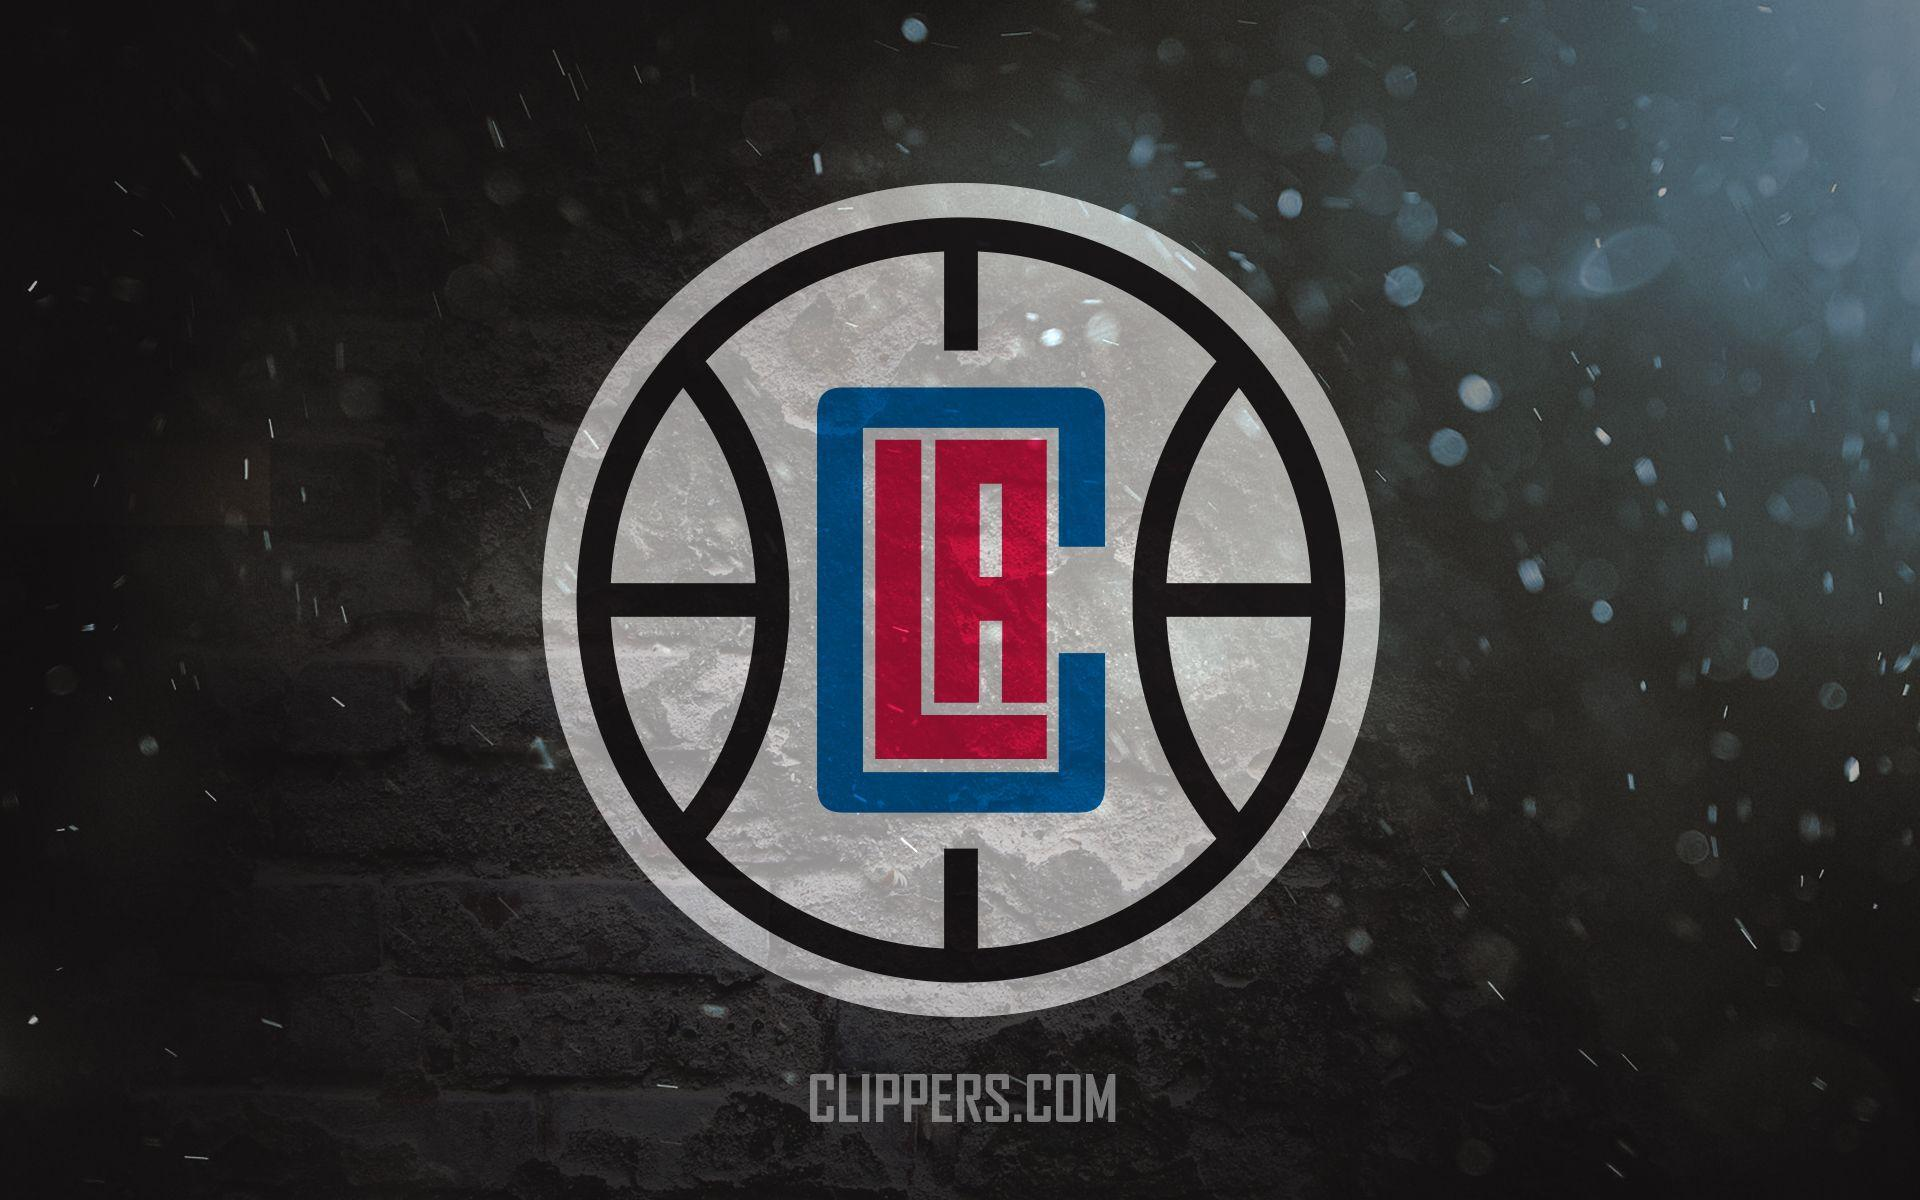 NBA Los Angeles Clippers Logo Team wallpaper HD 2016 in Basketball ...